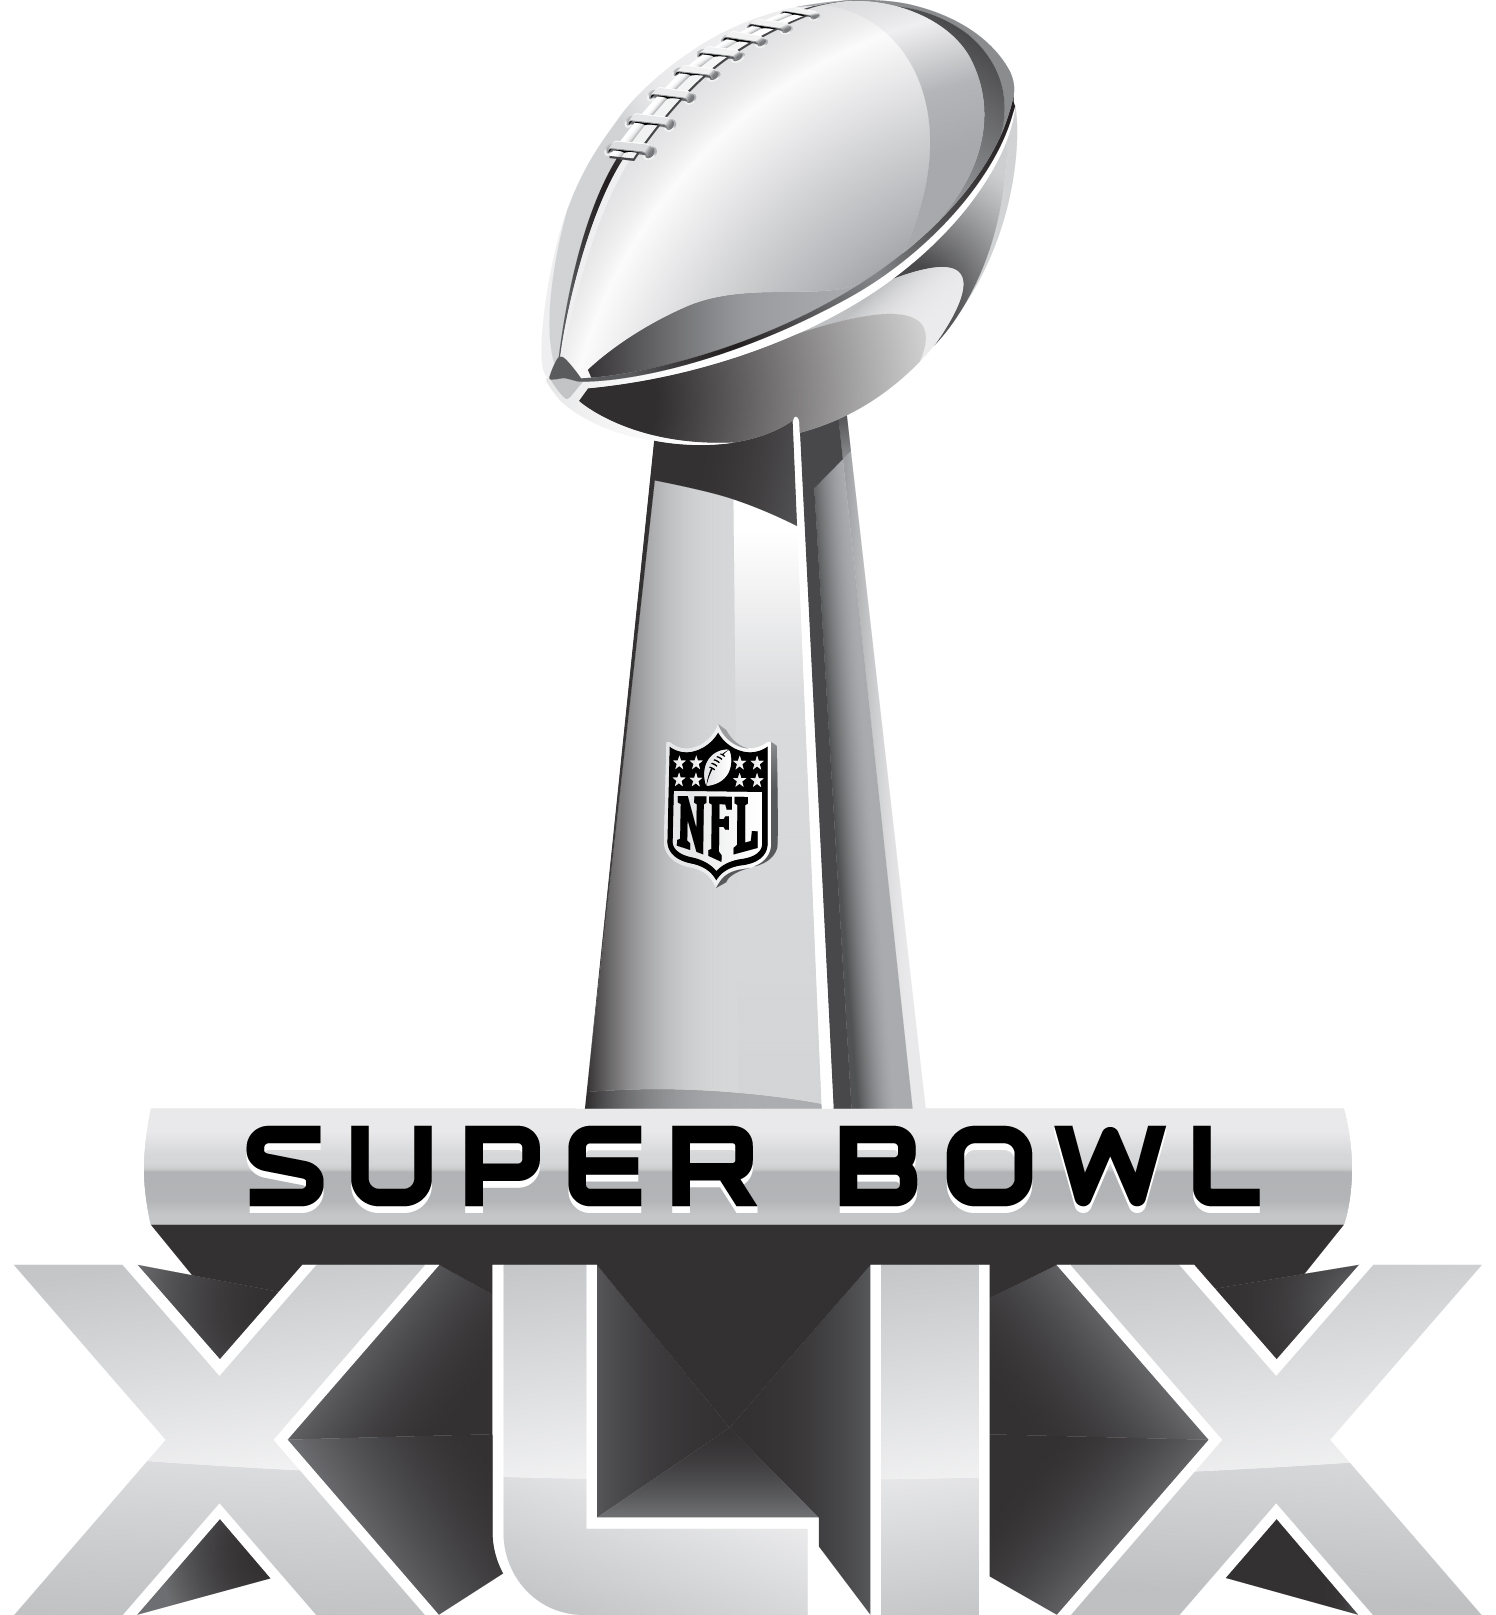 The only 3 apps you need to enjoy Super Bowl XLIX